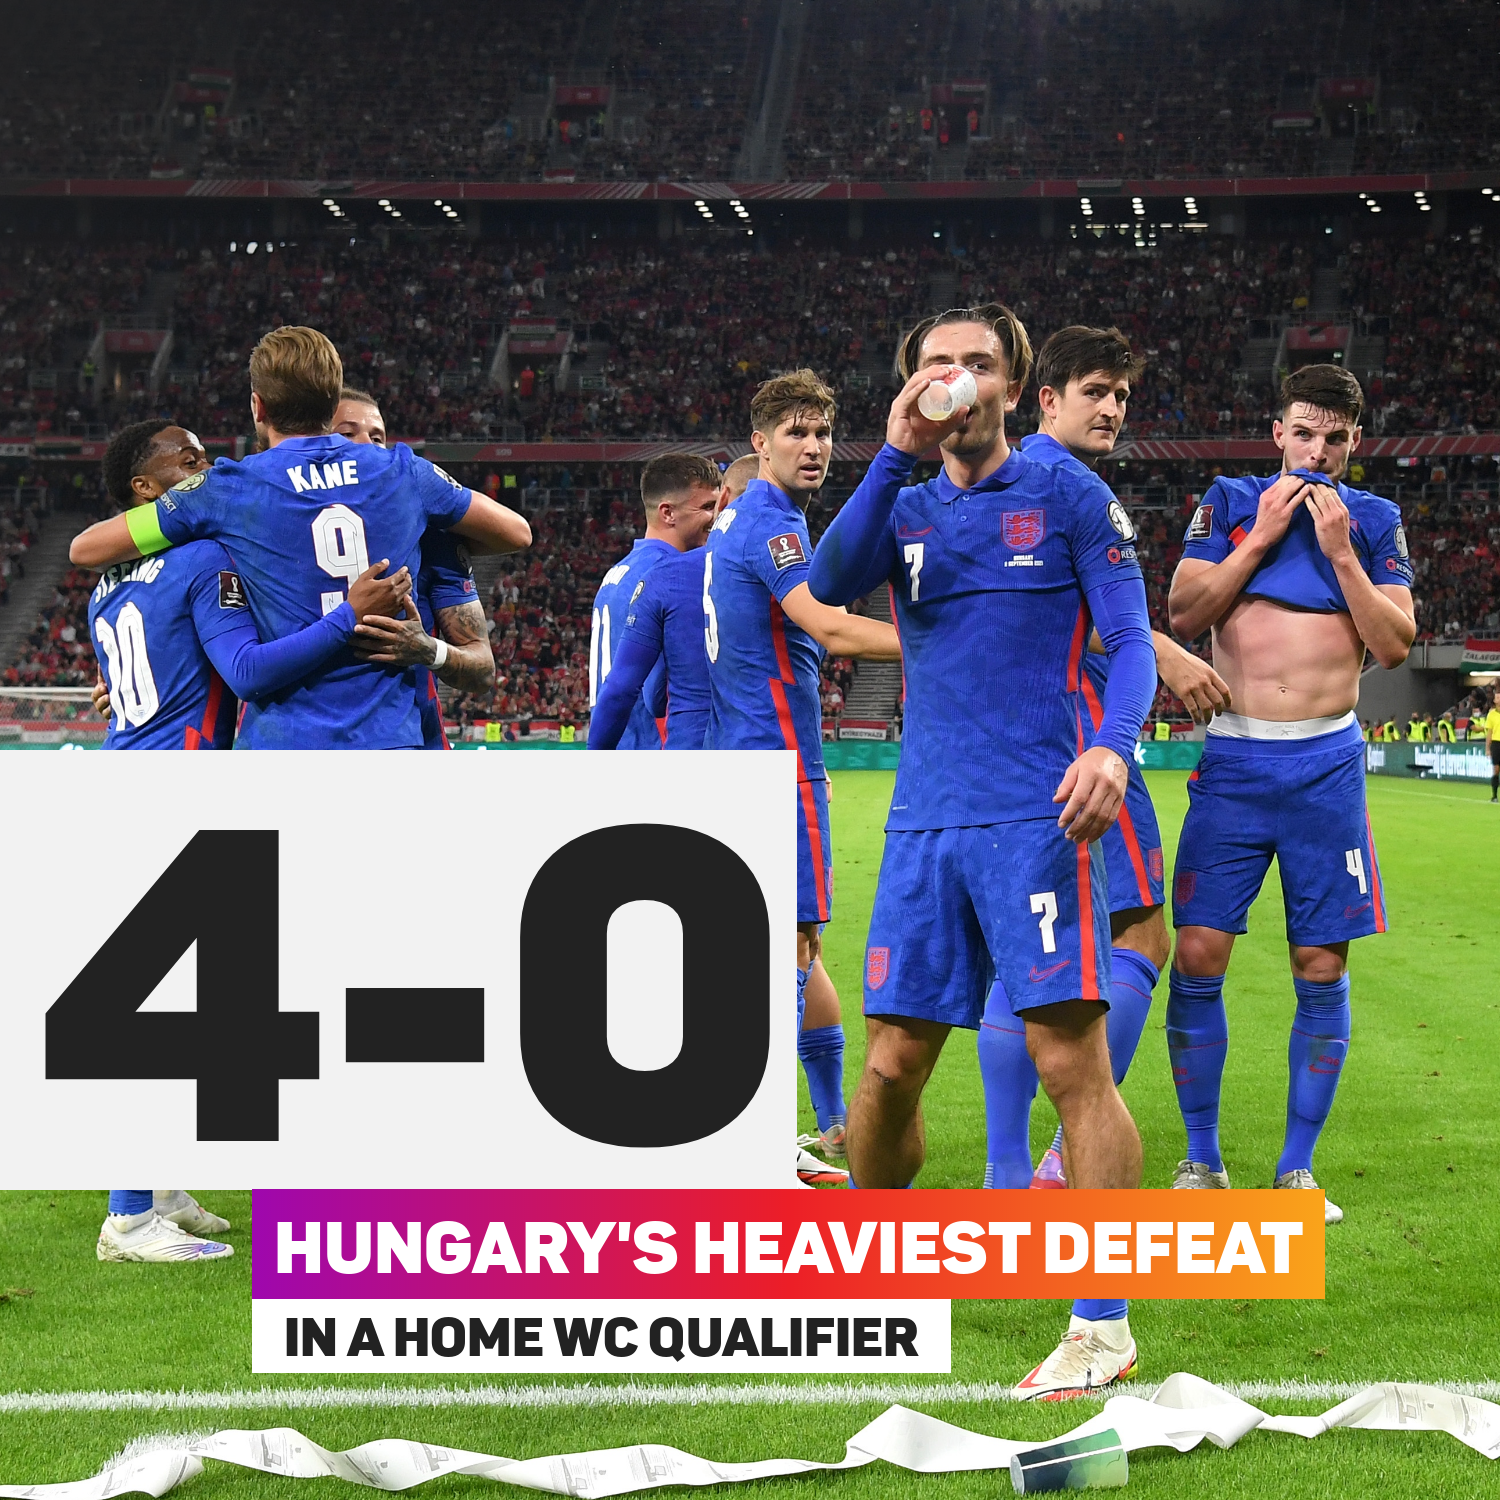 England handed Hungary a record defeat